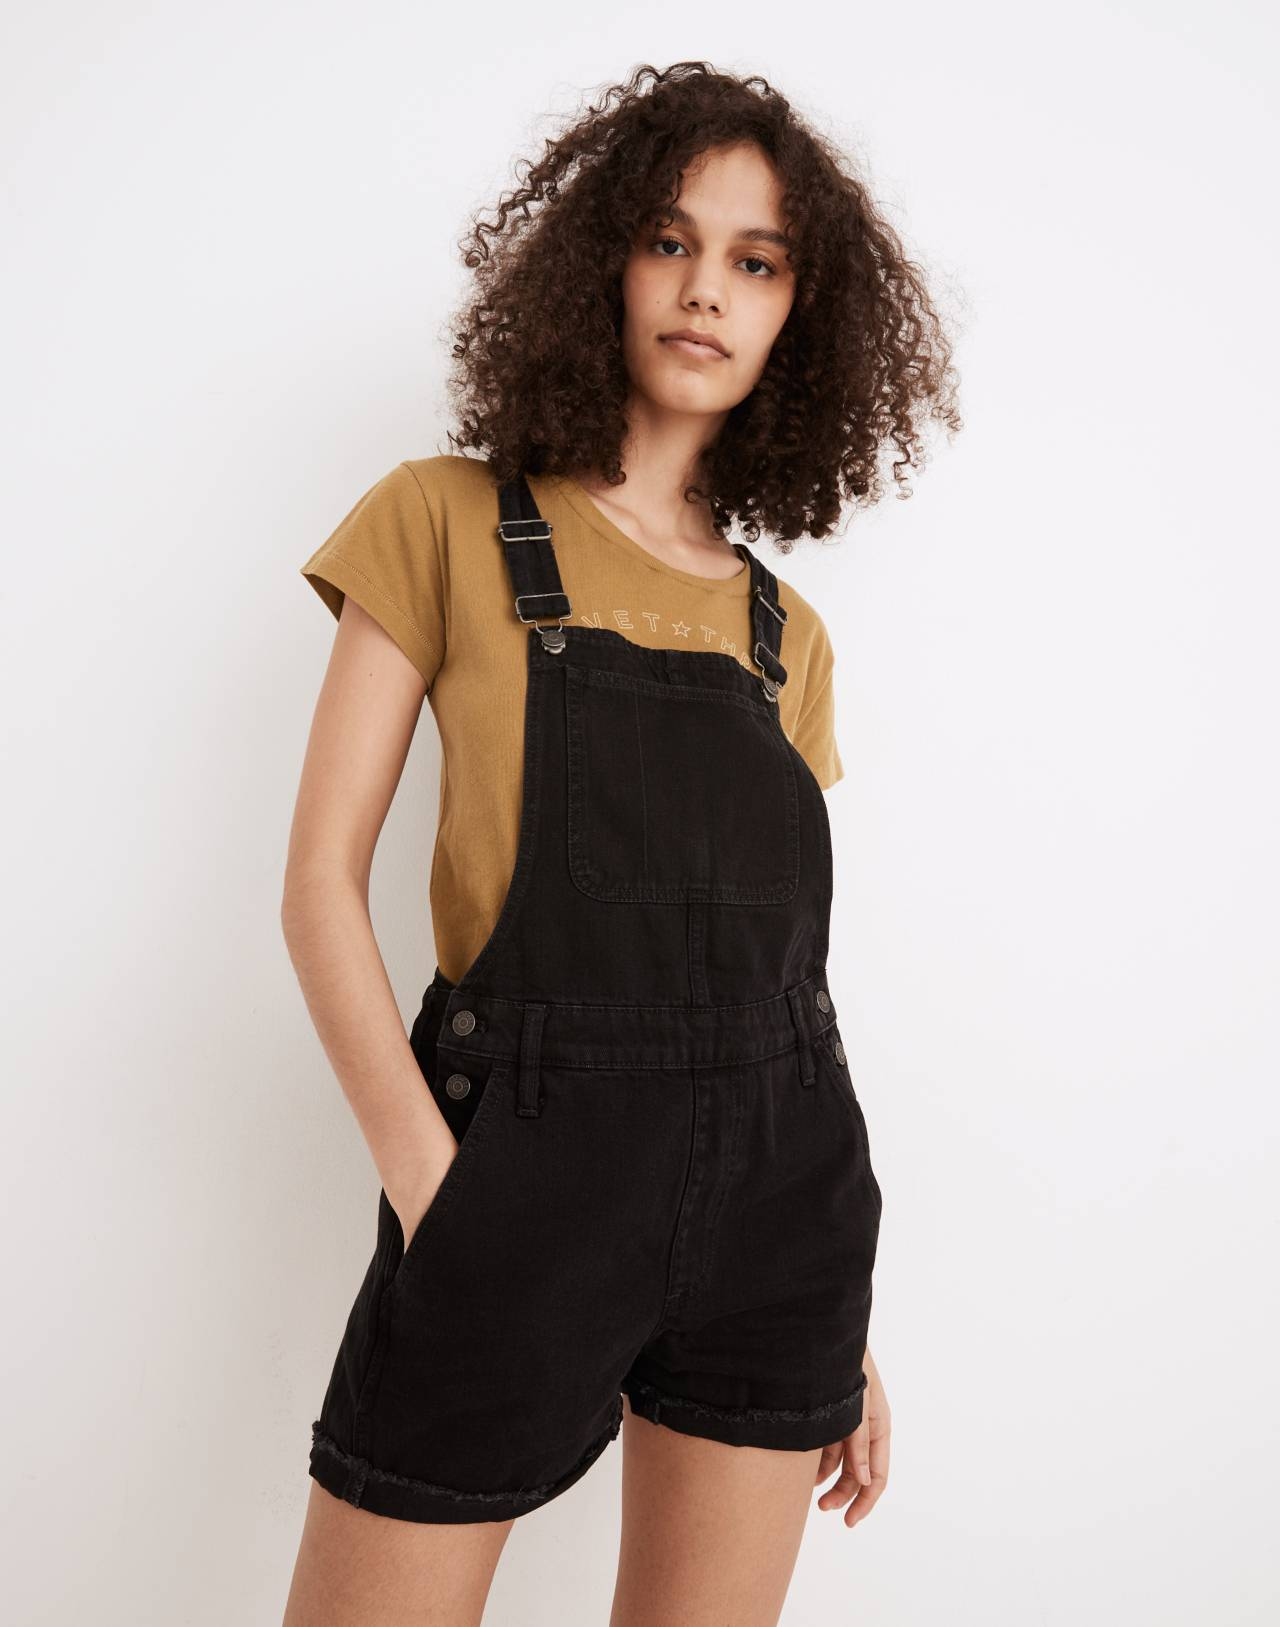 Adirondack Short Overalls in Washed Black in washed black image 1